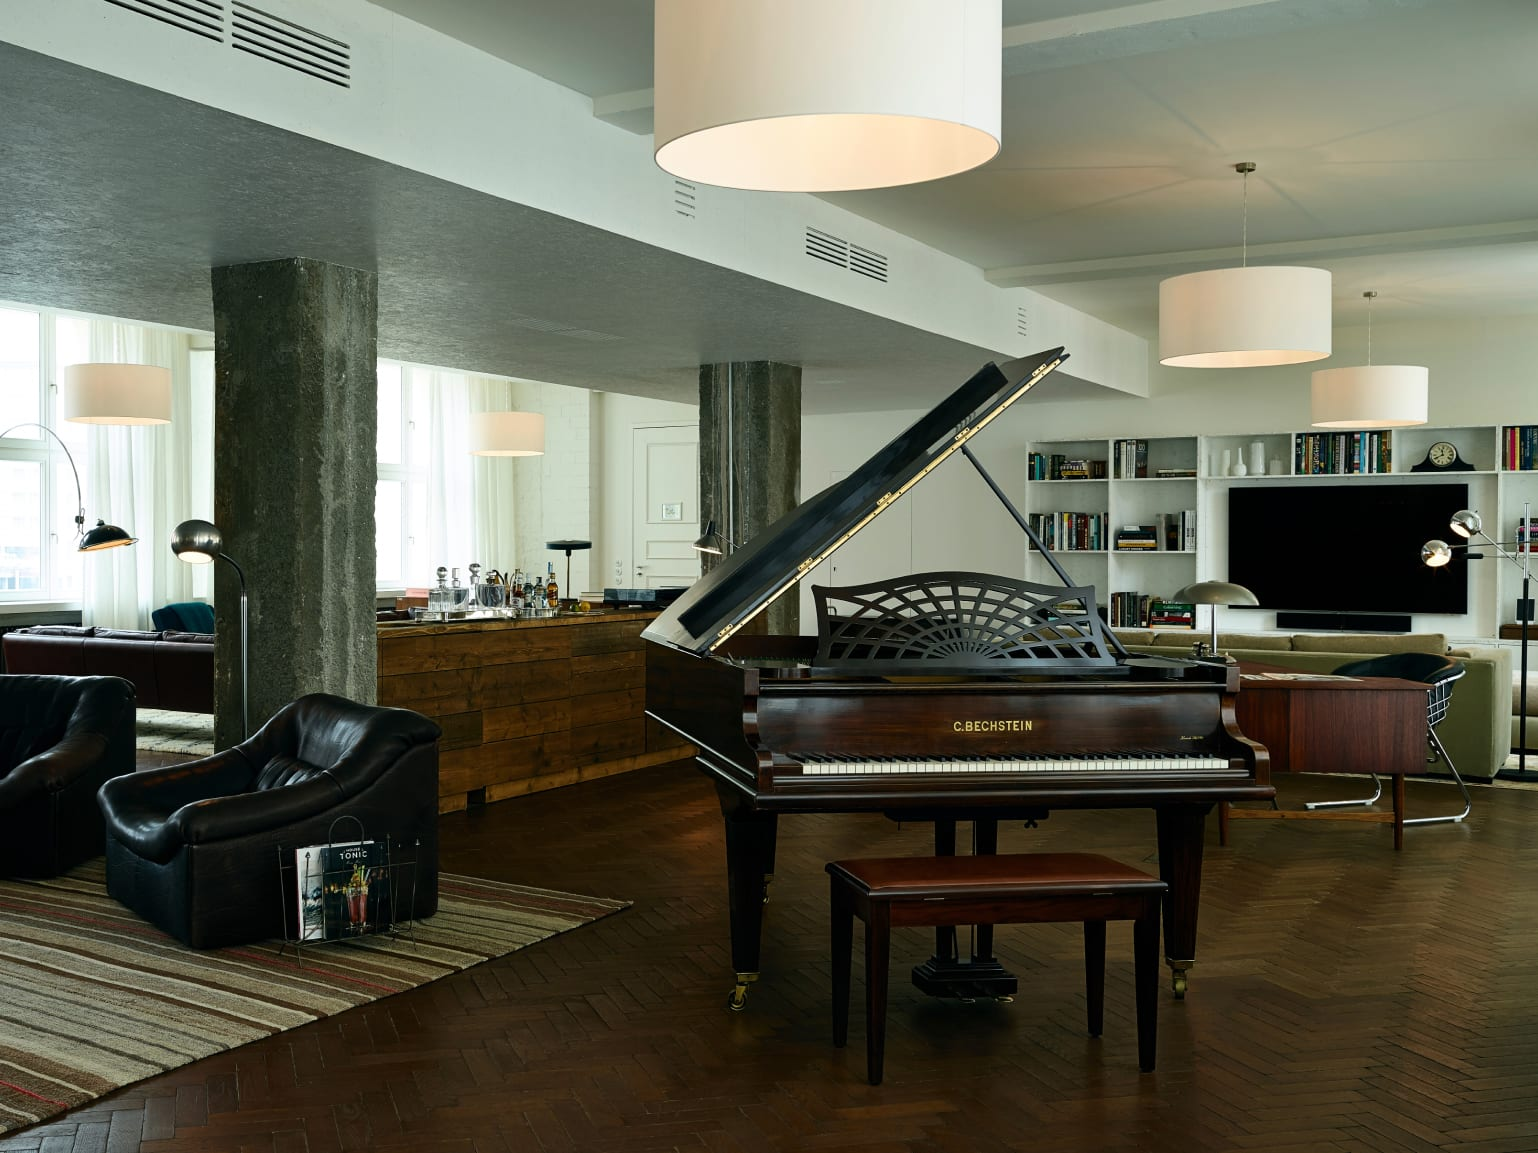 A large loft-style room with a grand piano and other items of furniture in it.